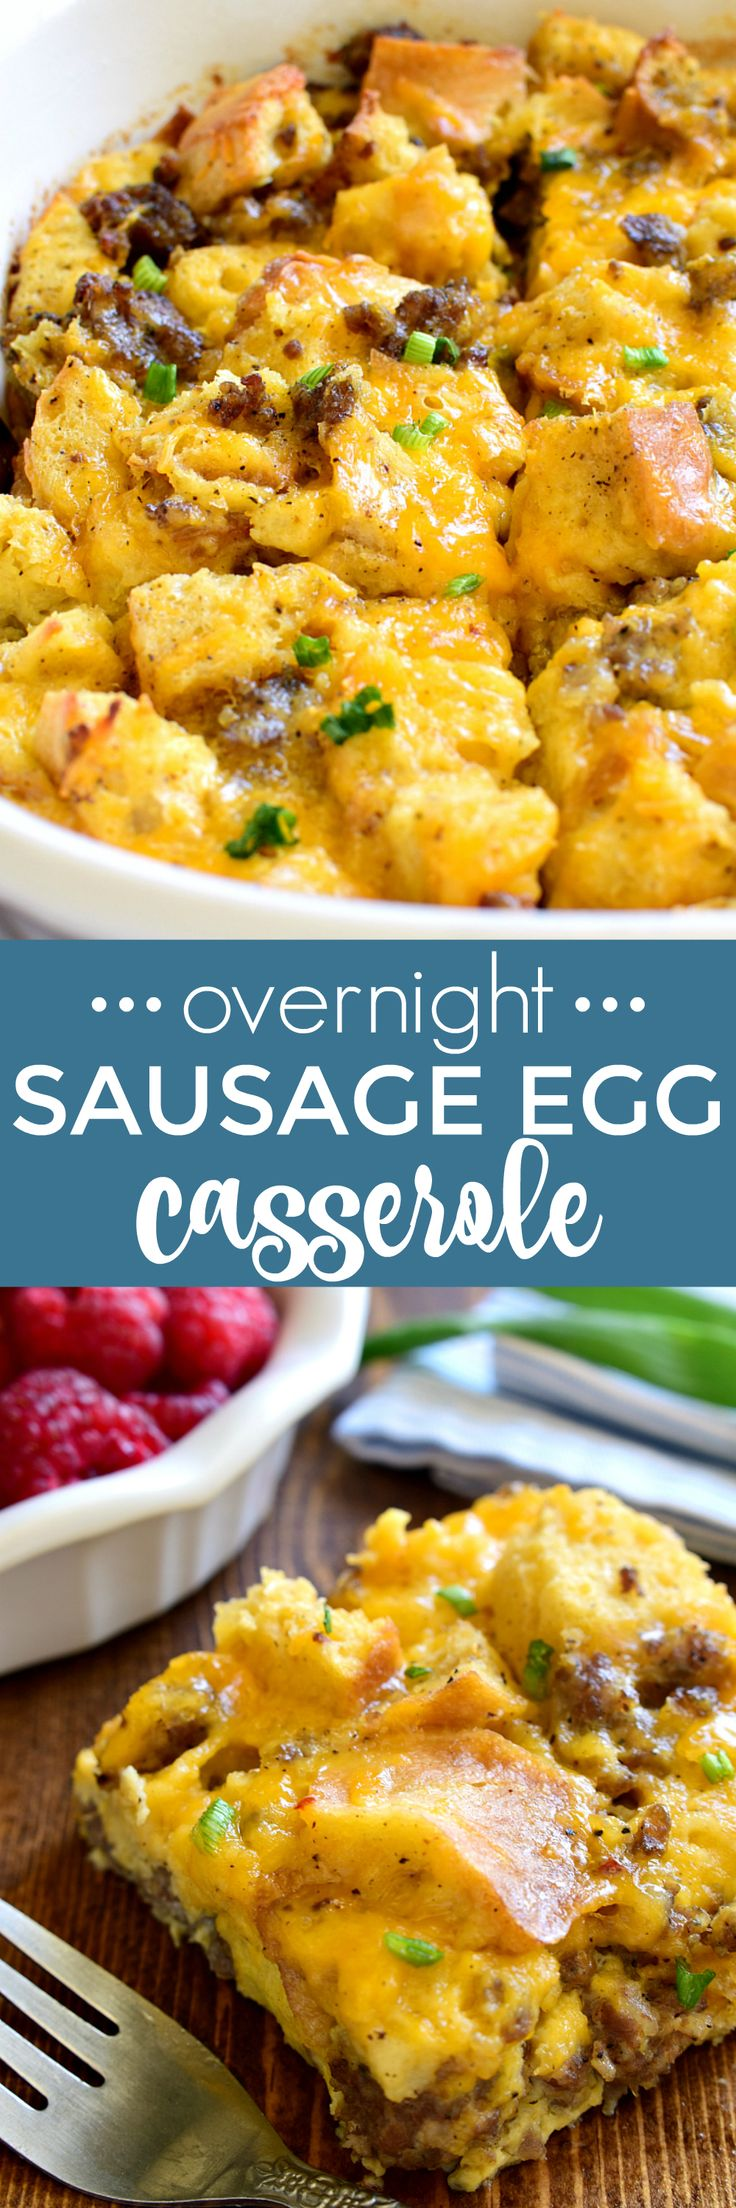 This Overnight Sausage Egg Casserole is a delicious addition to any breakfast! Perfect for holidays or special occasions, this easy egg casserole can be prepped in advance and popped in the oven the next morning. Your family will love the simple, delicious flavors of this classic egg casserole....guaranteed to become a favorite!